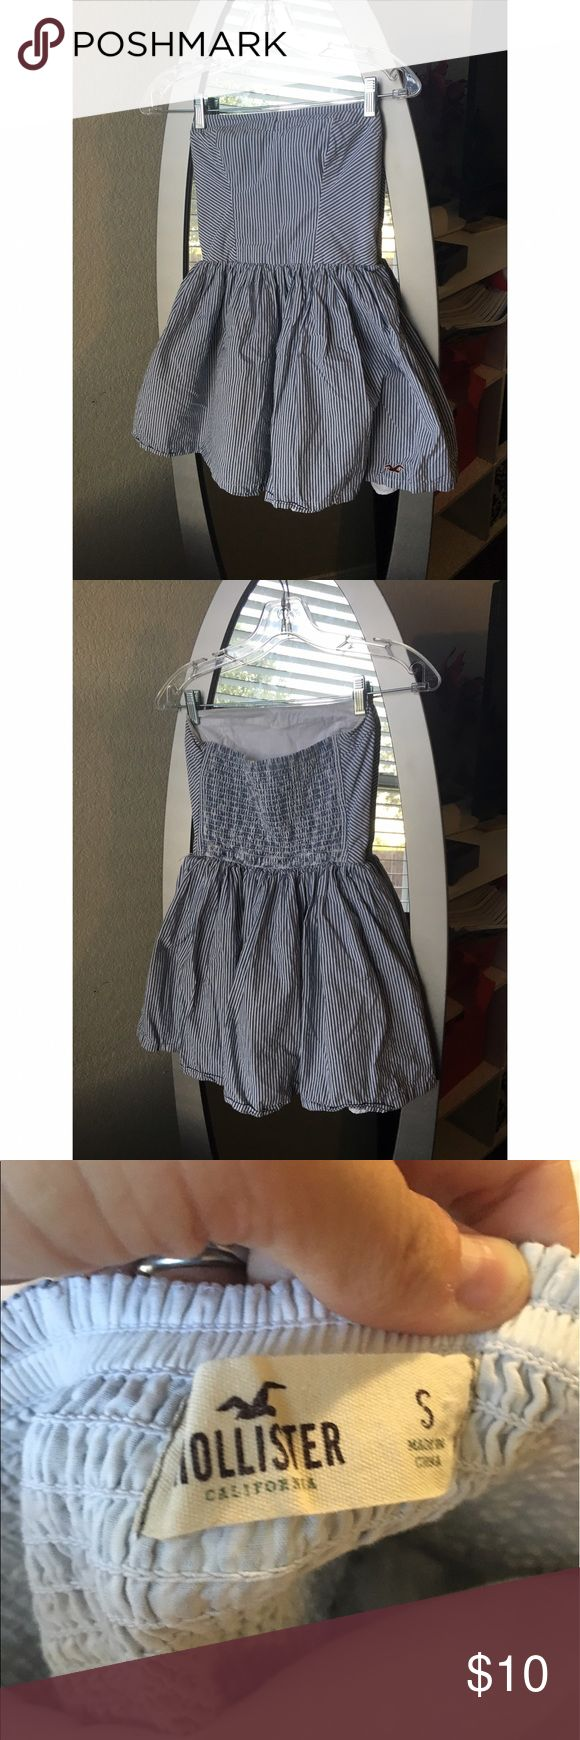 Strapless Hollister Dress Super cute stripped Hollister dress. Slight poof to the bottom which I love! Stretchy and super comfortable. Perfect condition worn only once Hollister Dresses Strapless